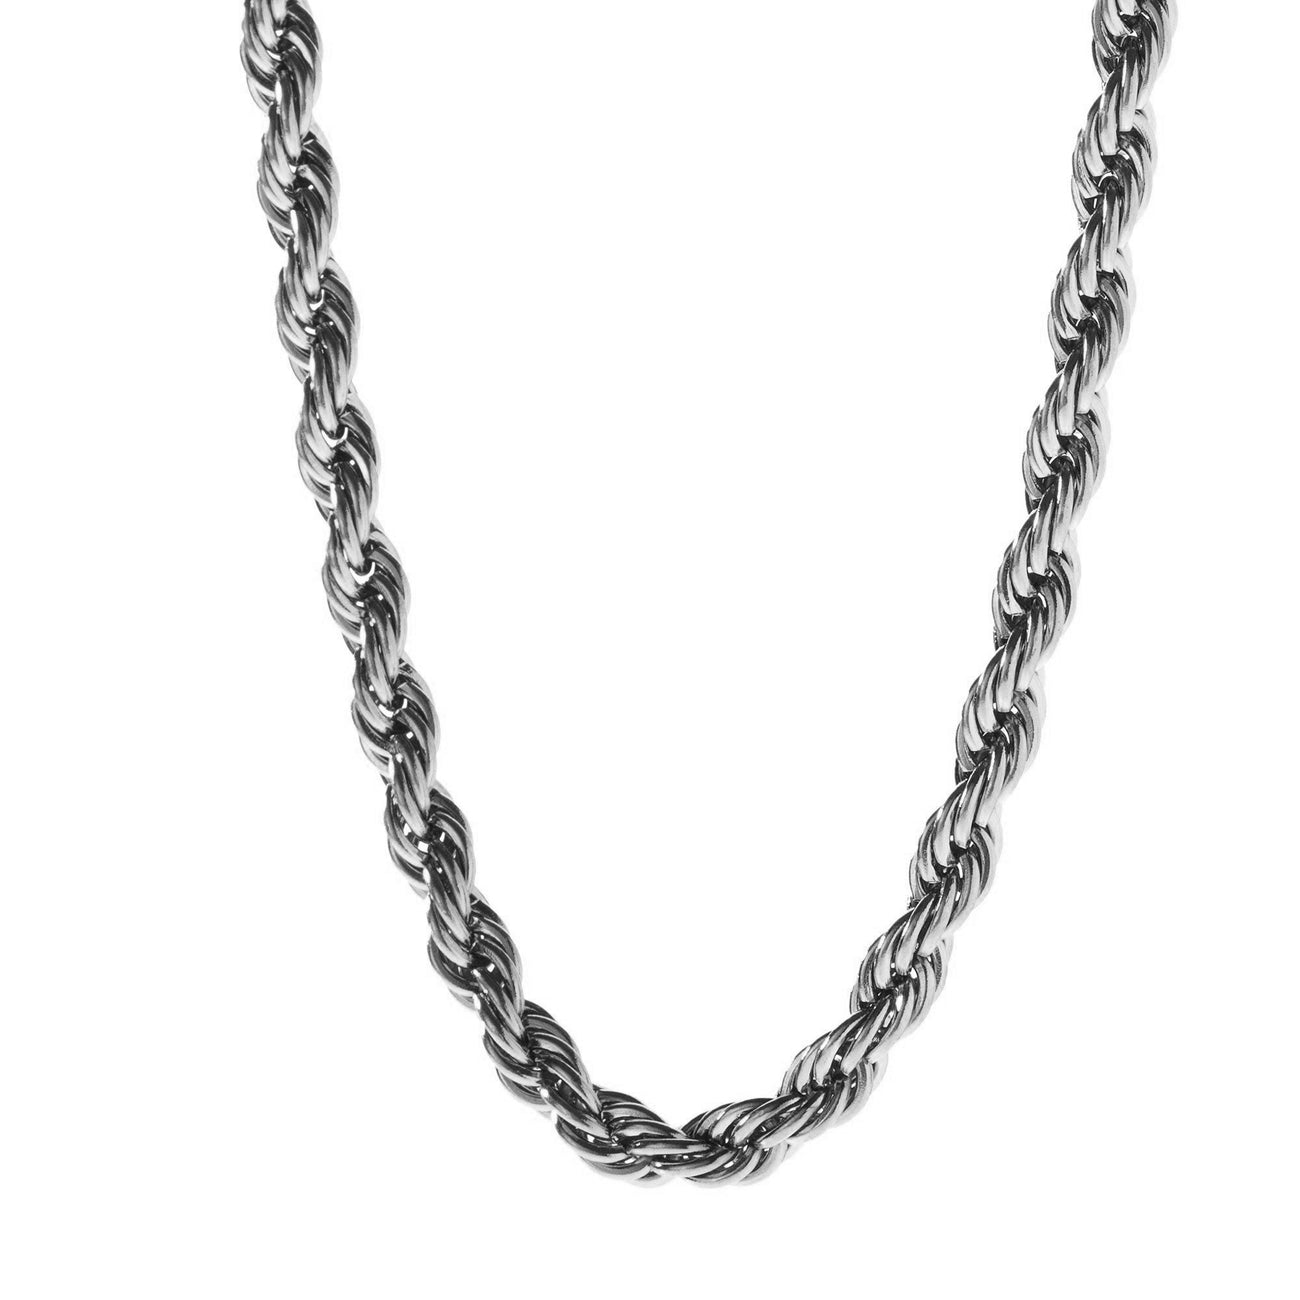 Chains - 6mm Stainless Steel Rope Chain